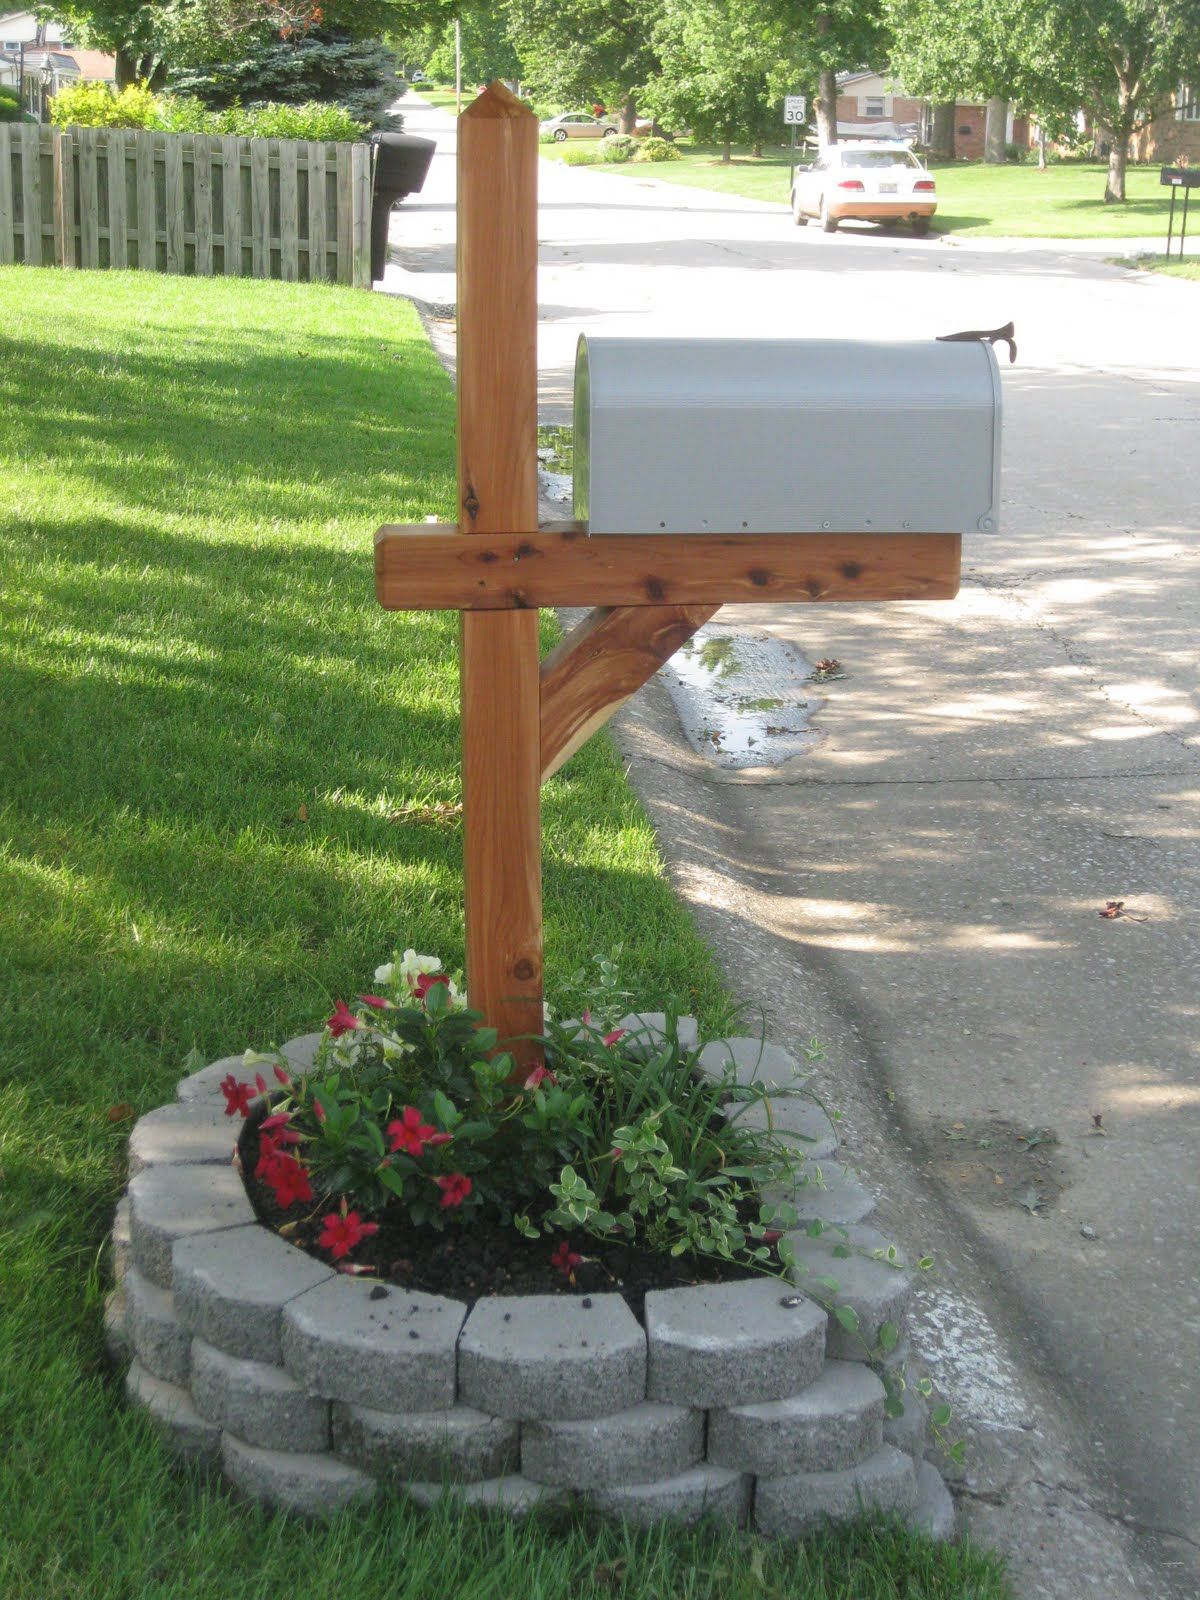 Awesome Mailbox Garden  Spruce Up Your Mailbox With Some Flowers By Creating A Base  Garden